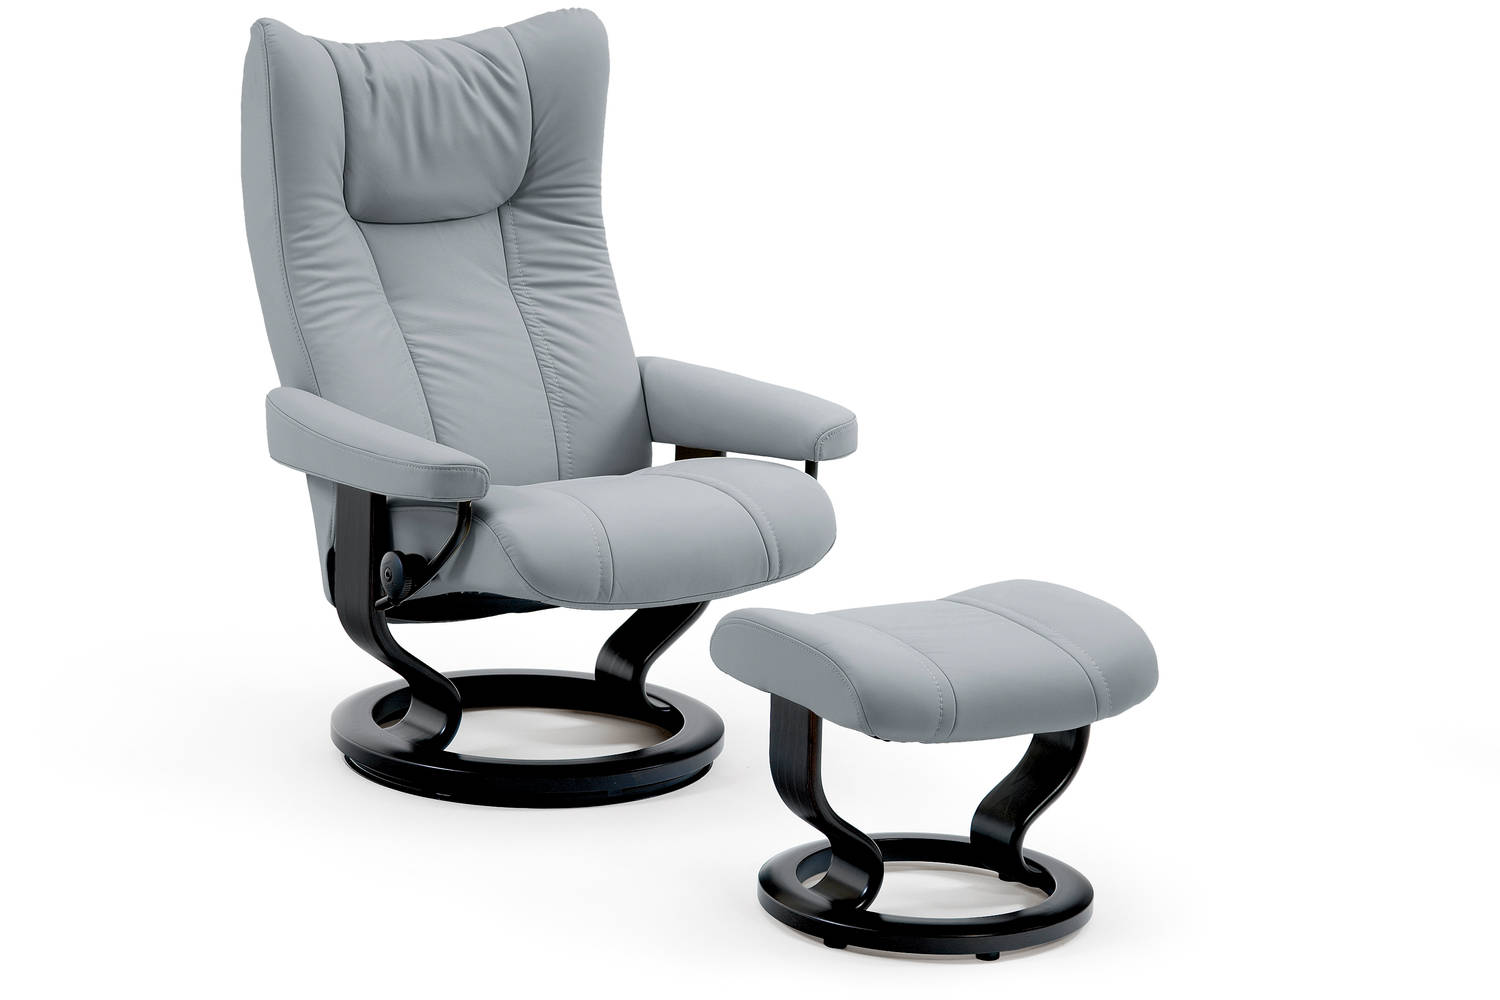 Stressless Eagle Recliners ship Fully-Assembled.